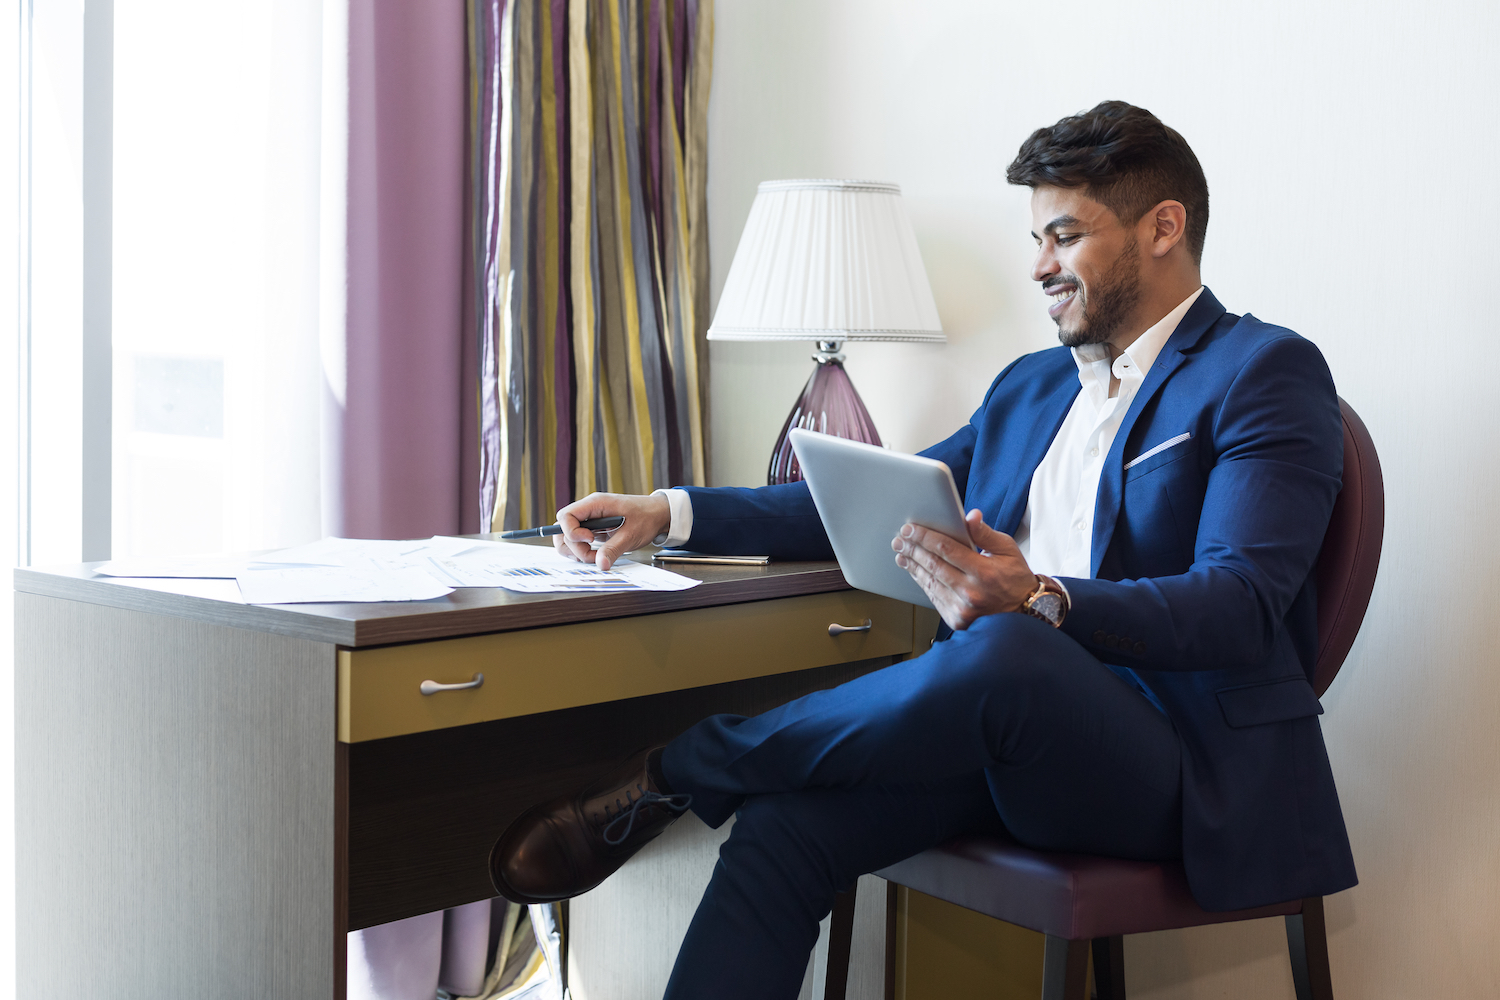 Businessman Working in a Hotel Room